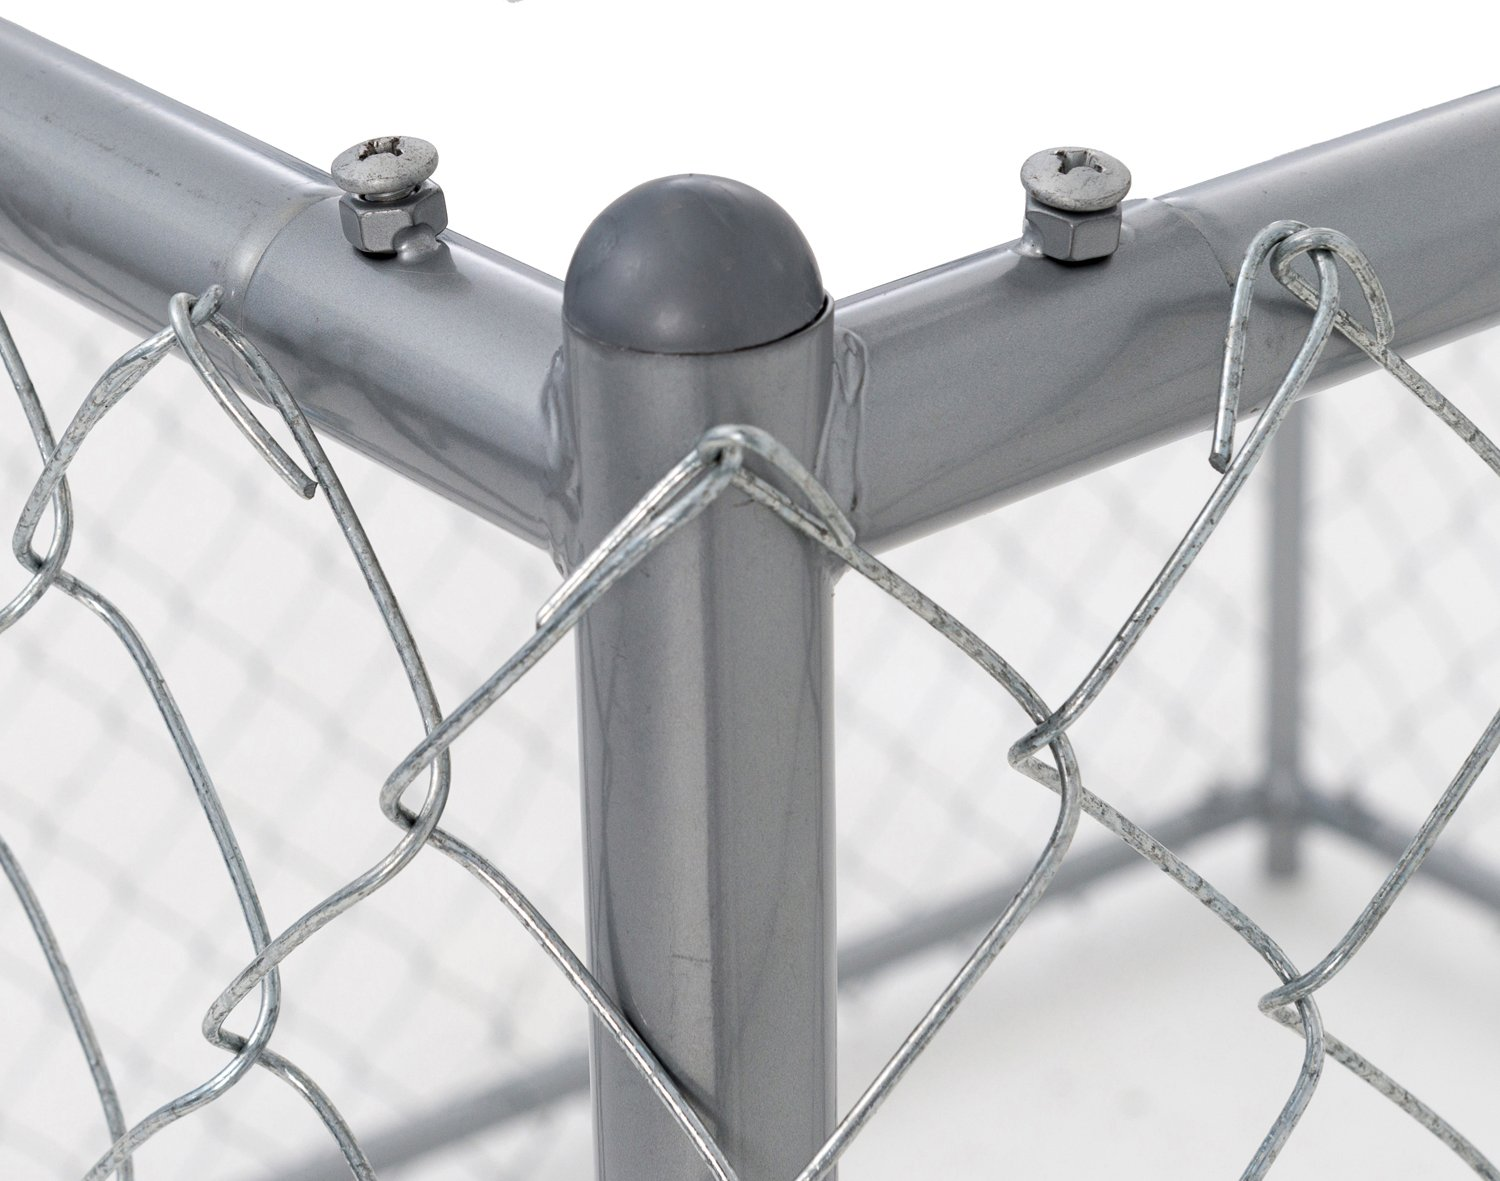 Chain Link Dog Kennel - Lucky Dog Outdoor Heavy Duty Pet Kennel - This Pet Cage System is Perfect For Containing Larger Dogs and Small Animals. Galvanized chain link doesn't kink or tangle. Two setup options (5'W x 15'L x 6'H or 10'W x 10'L x 6'H)